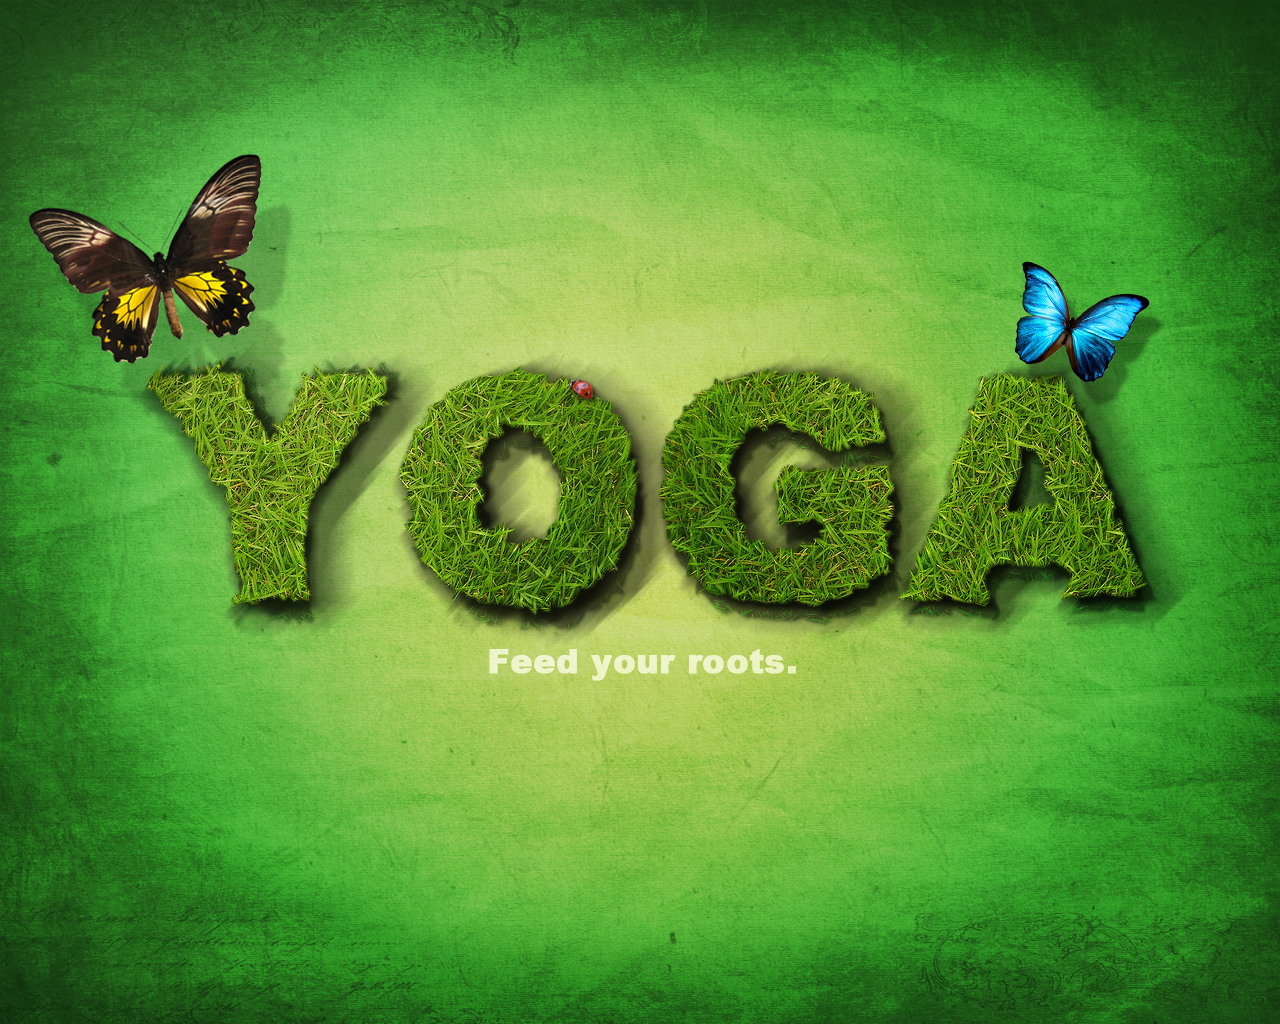 Free Download Yoga Feed Your Roots Wallpaper By Accomplicated 1280x1024 For Your Desktop Mobile Tablet Explore 41 Yoga Wallpaper Images Yoga Zen Wallpaper Free Yoga Wallpaper Downloads Yoga Desktop Wallpaper